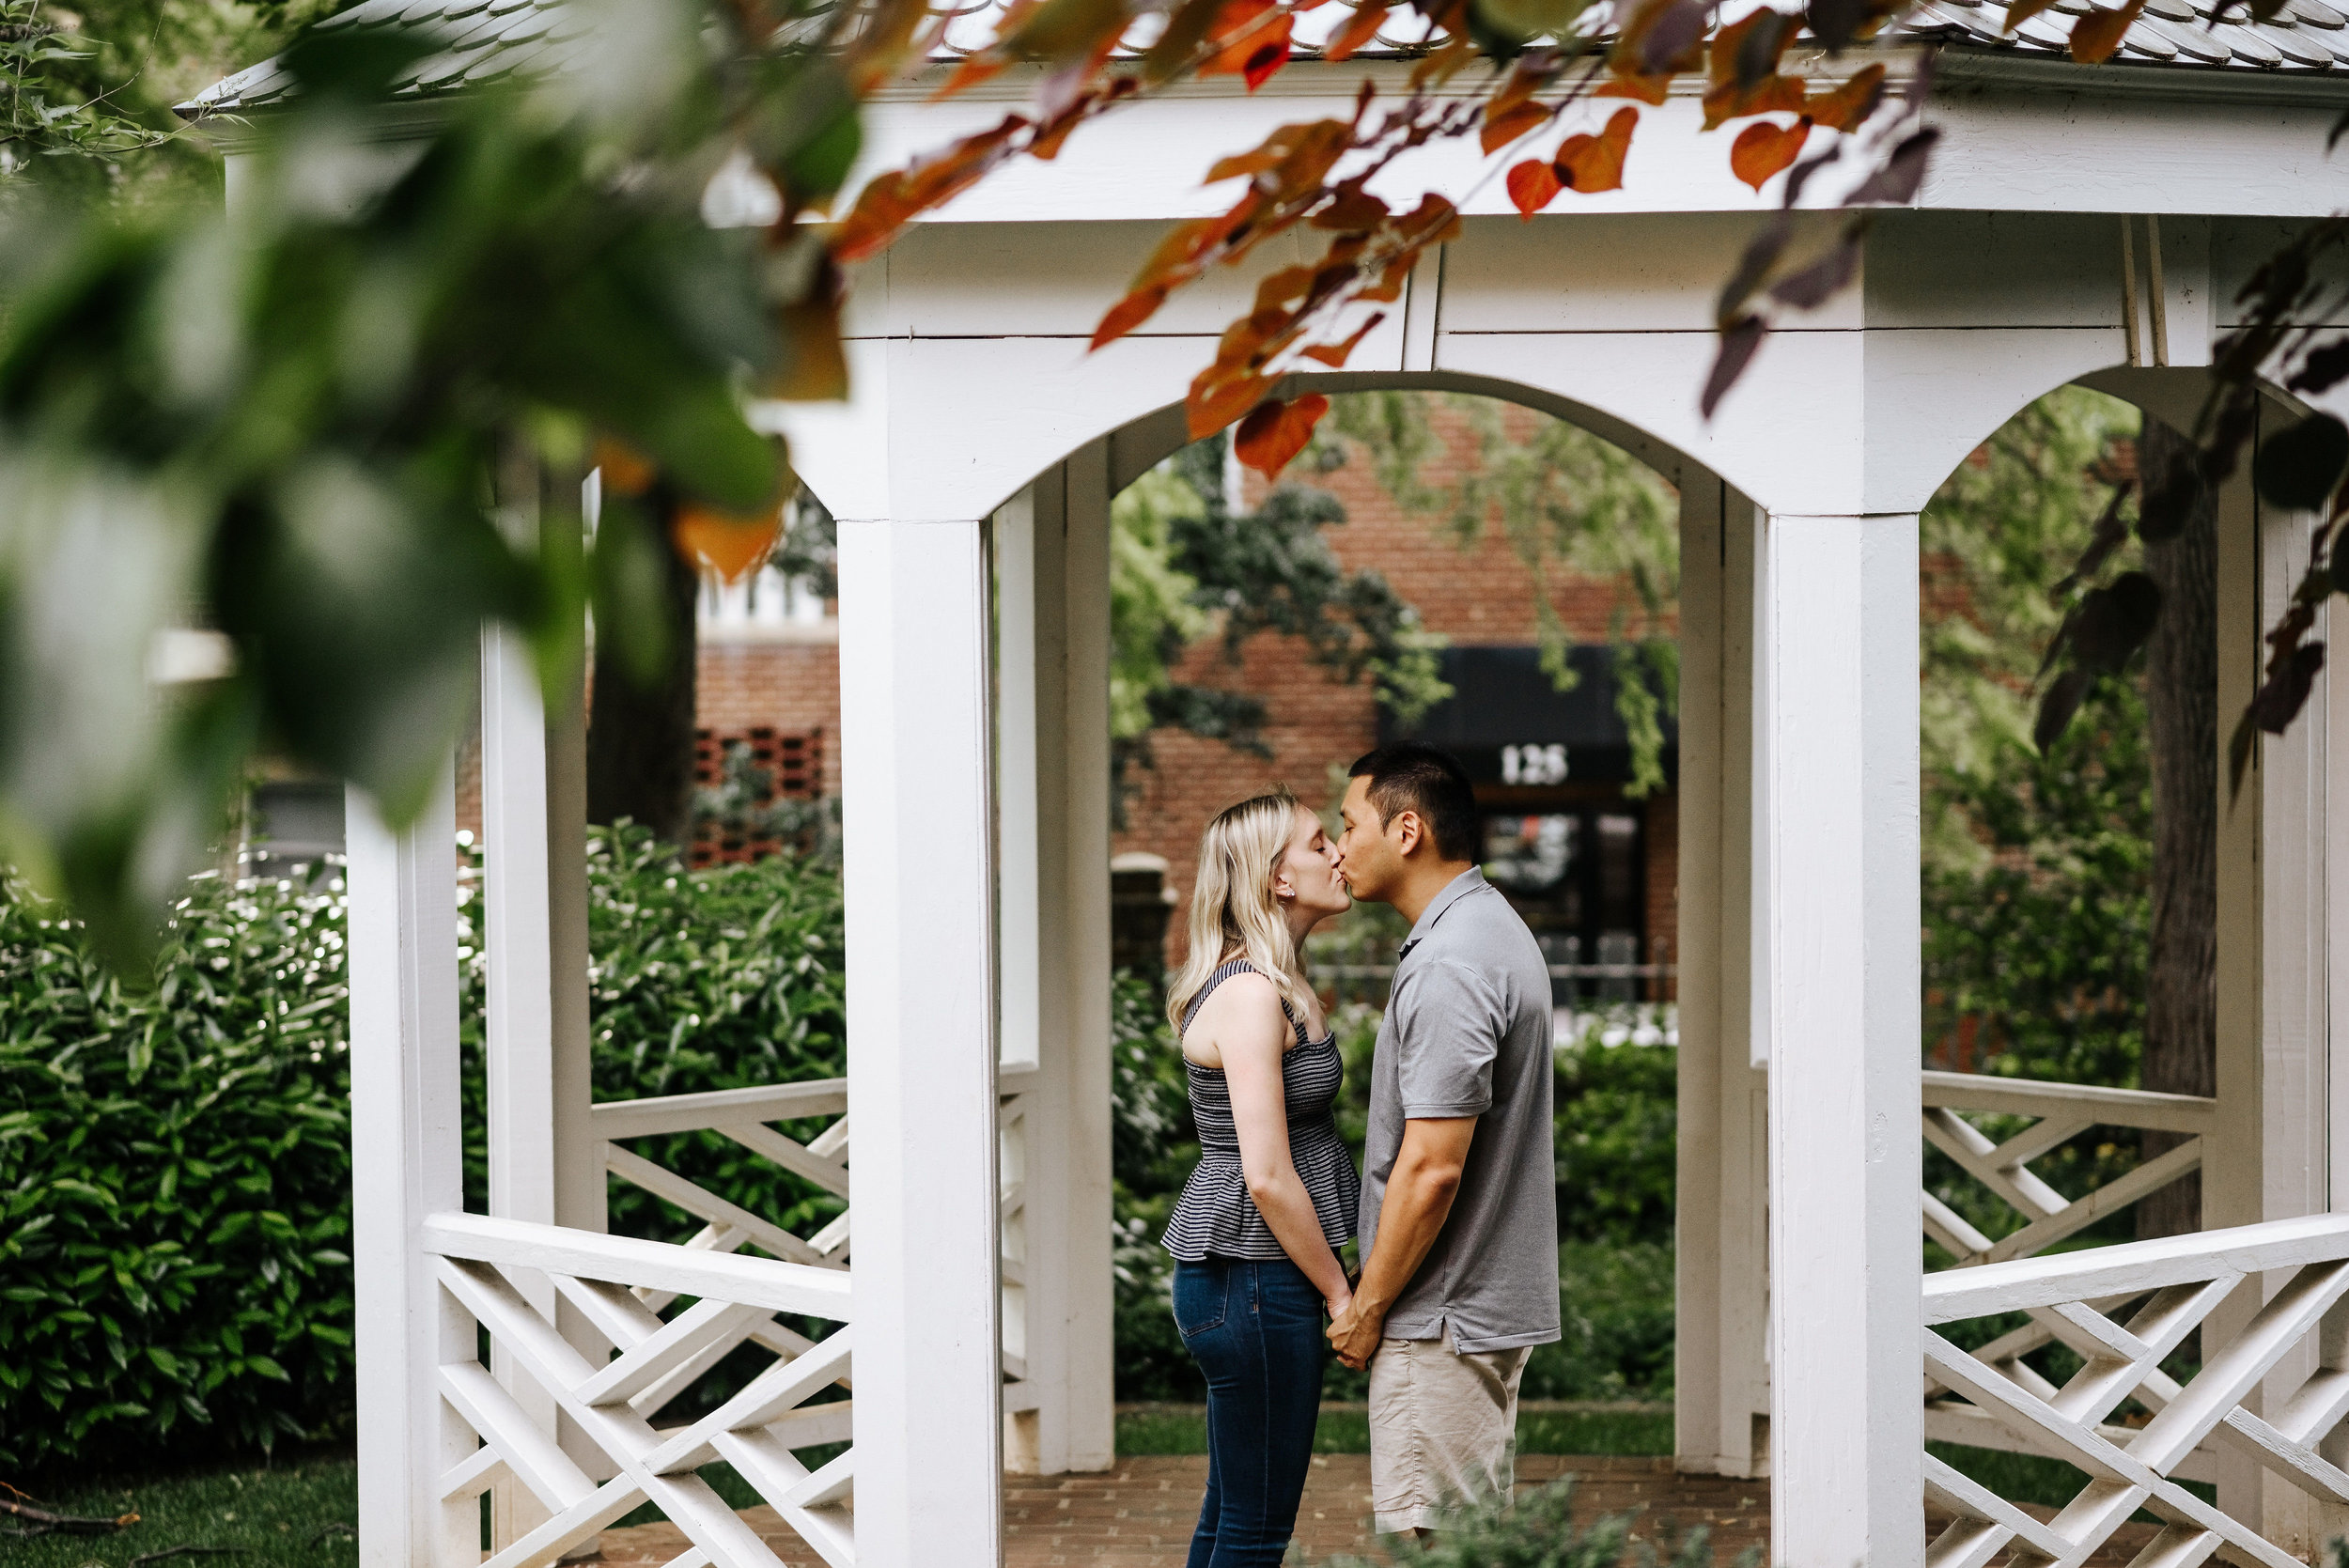 Bella_Alec_Old_Town_Alexandria_Engagement_Session_Photography_by_V_5889.jpg